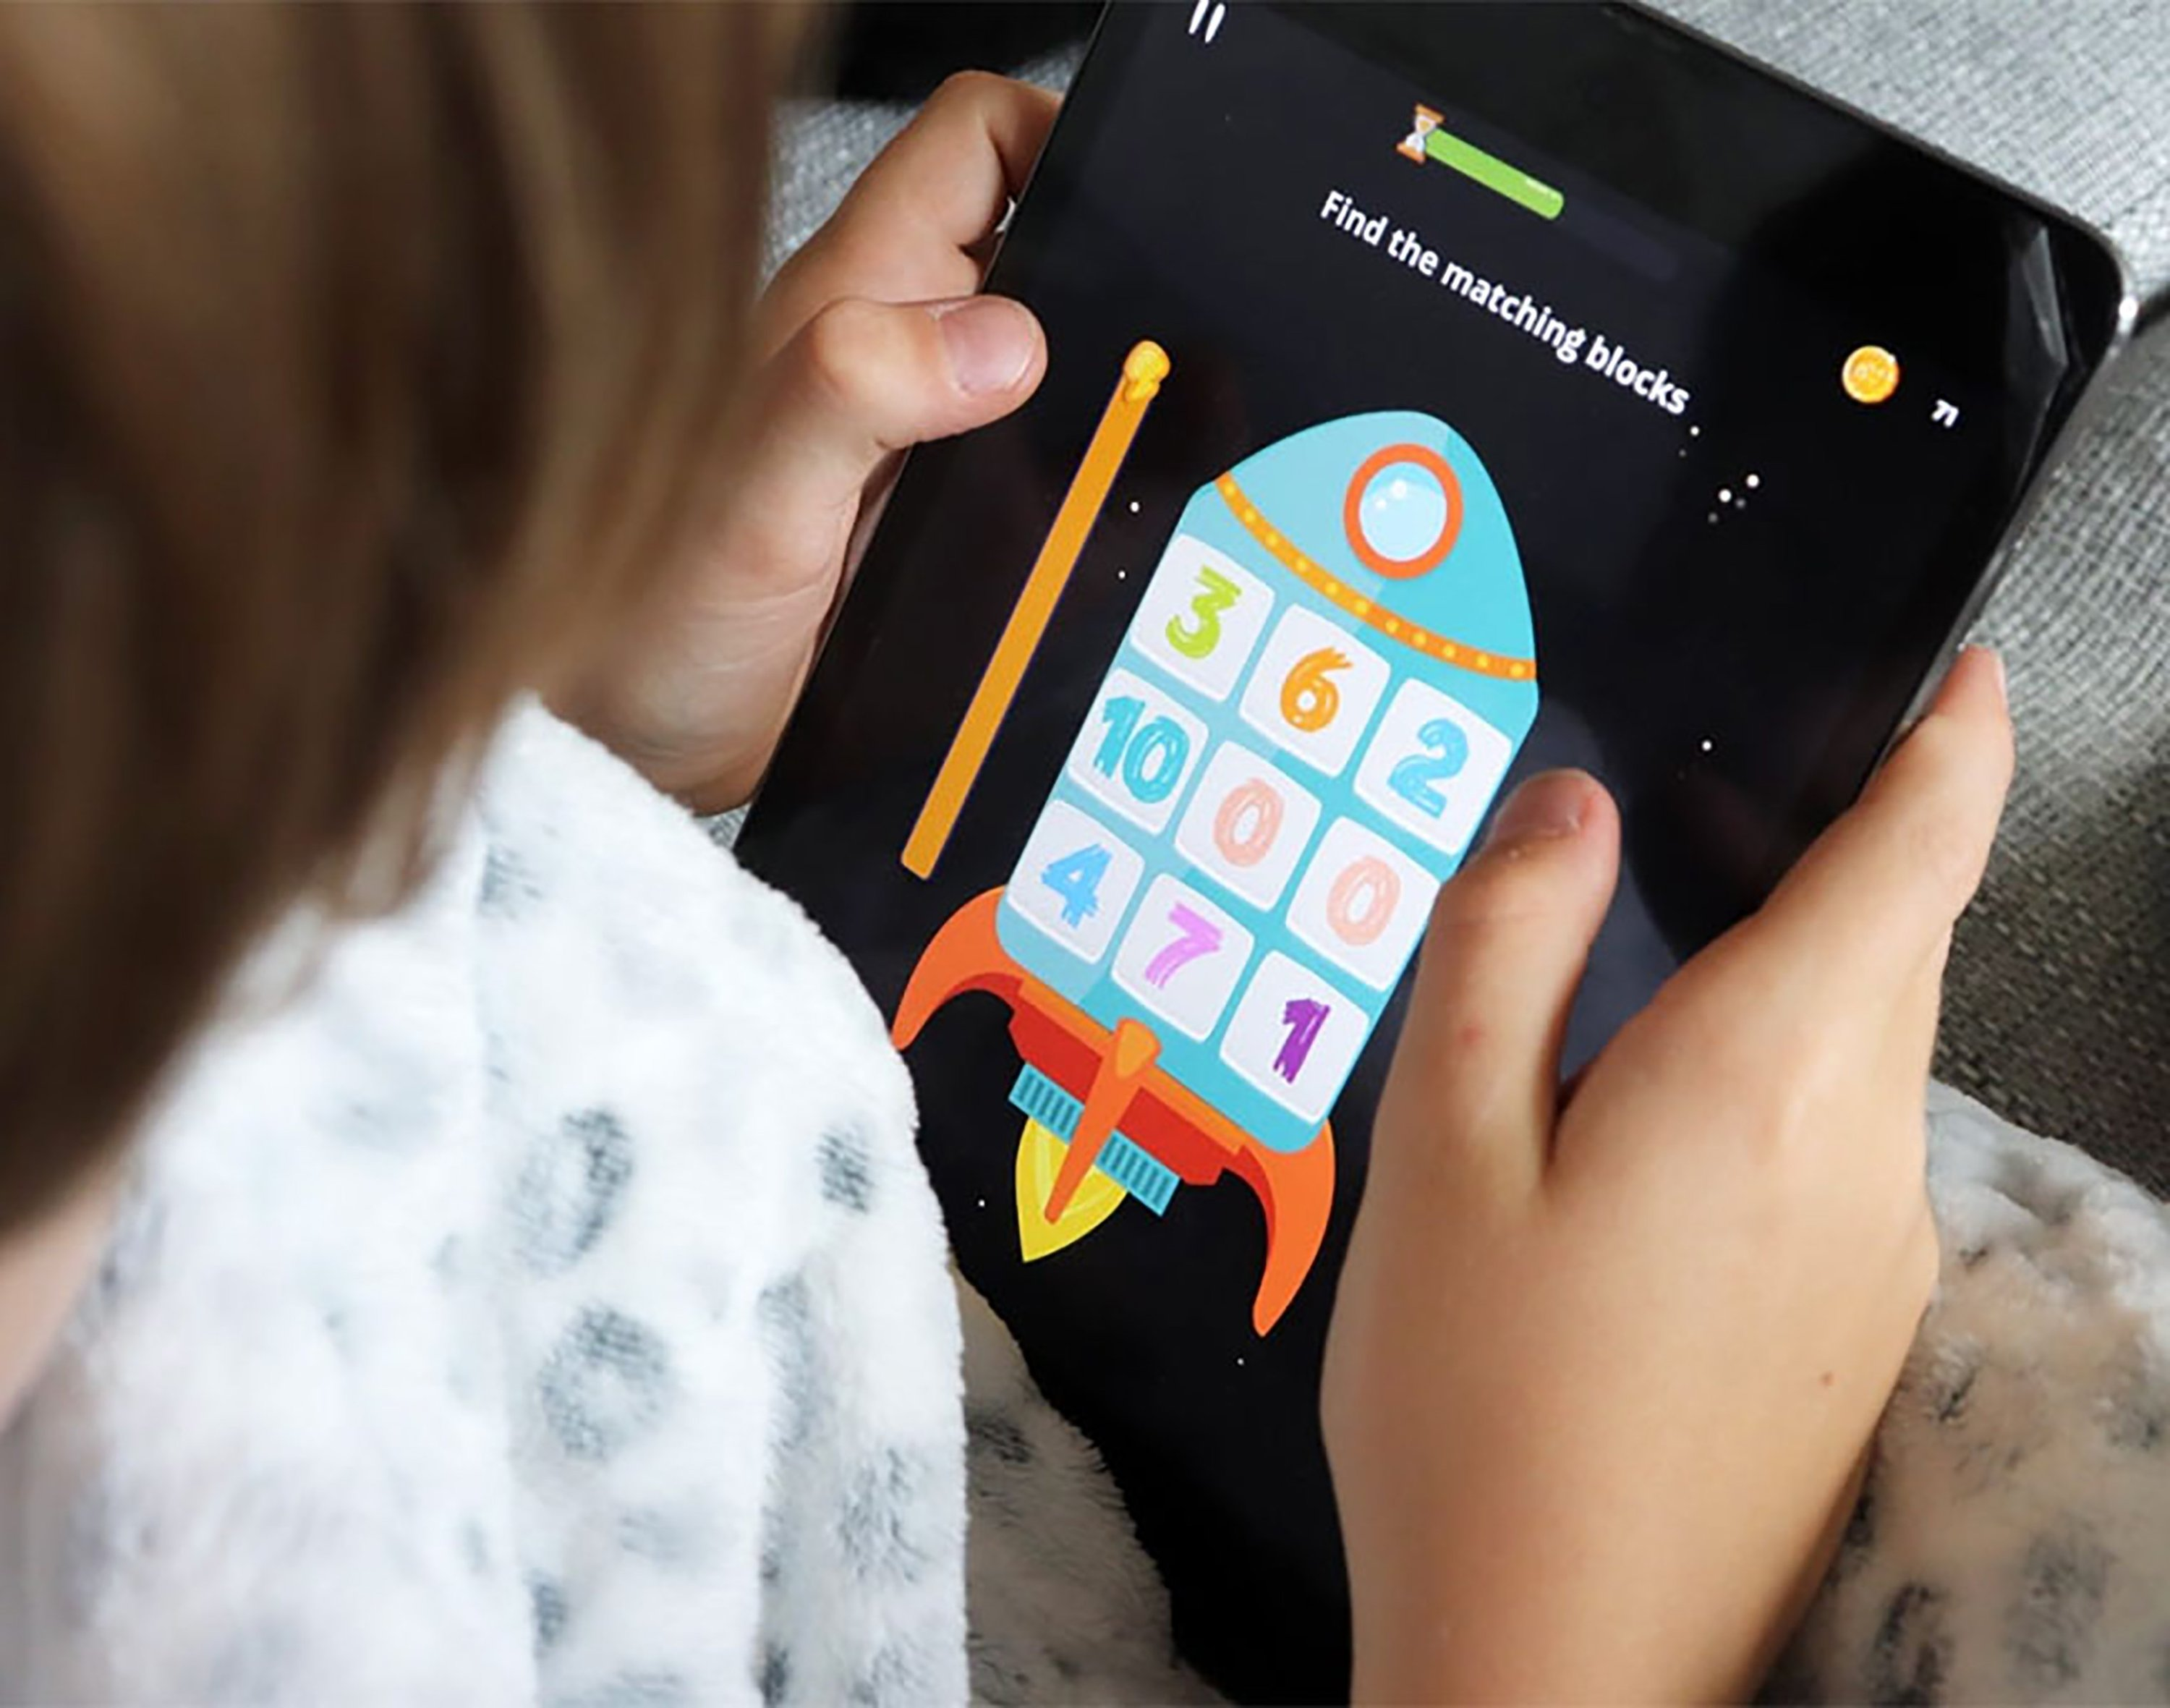 New gamified education platforms are offering educational intelligence games for children. (DHA Photo)